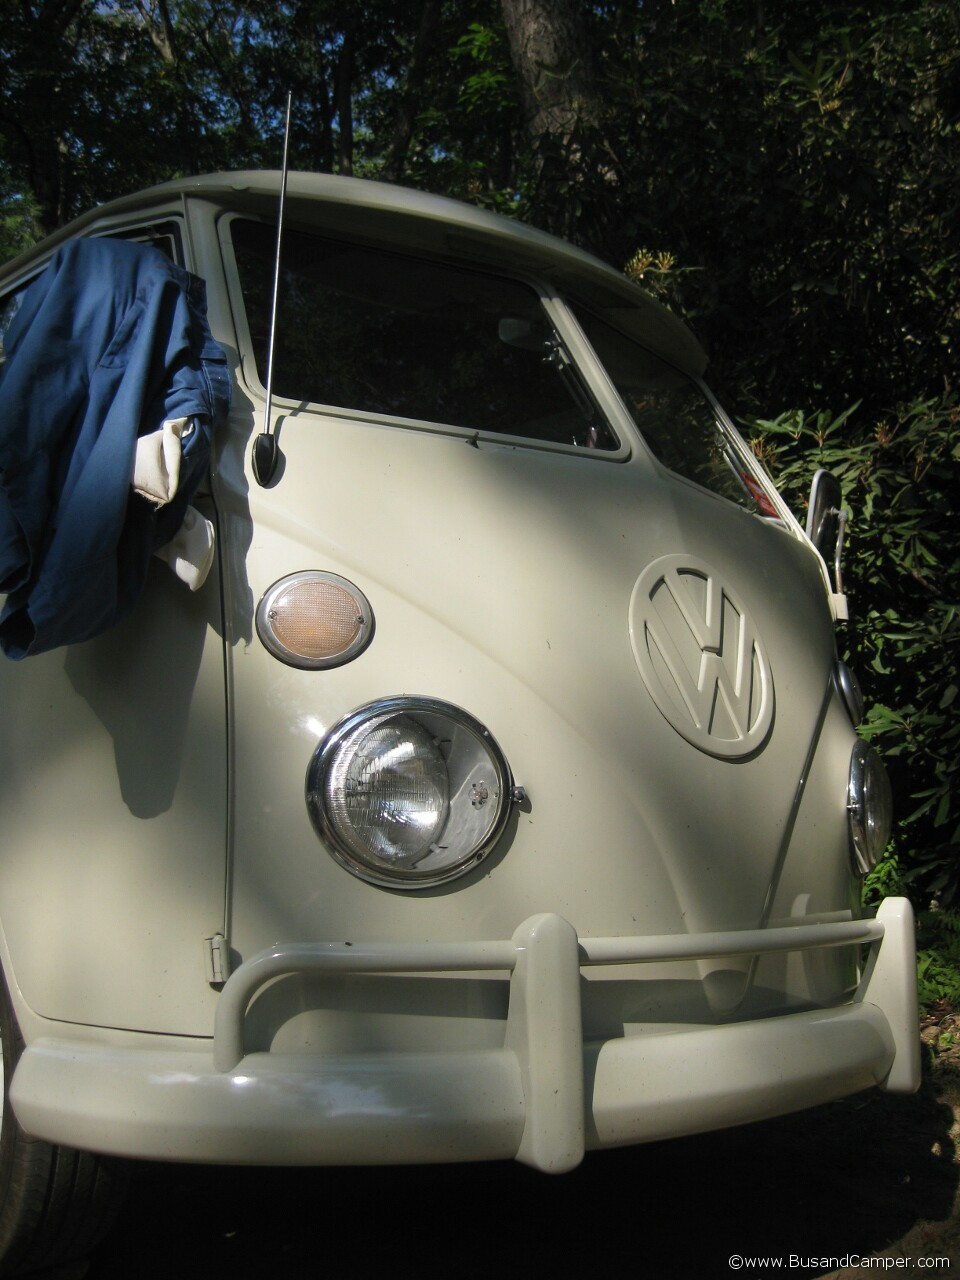 Artistic picture of a Campervan